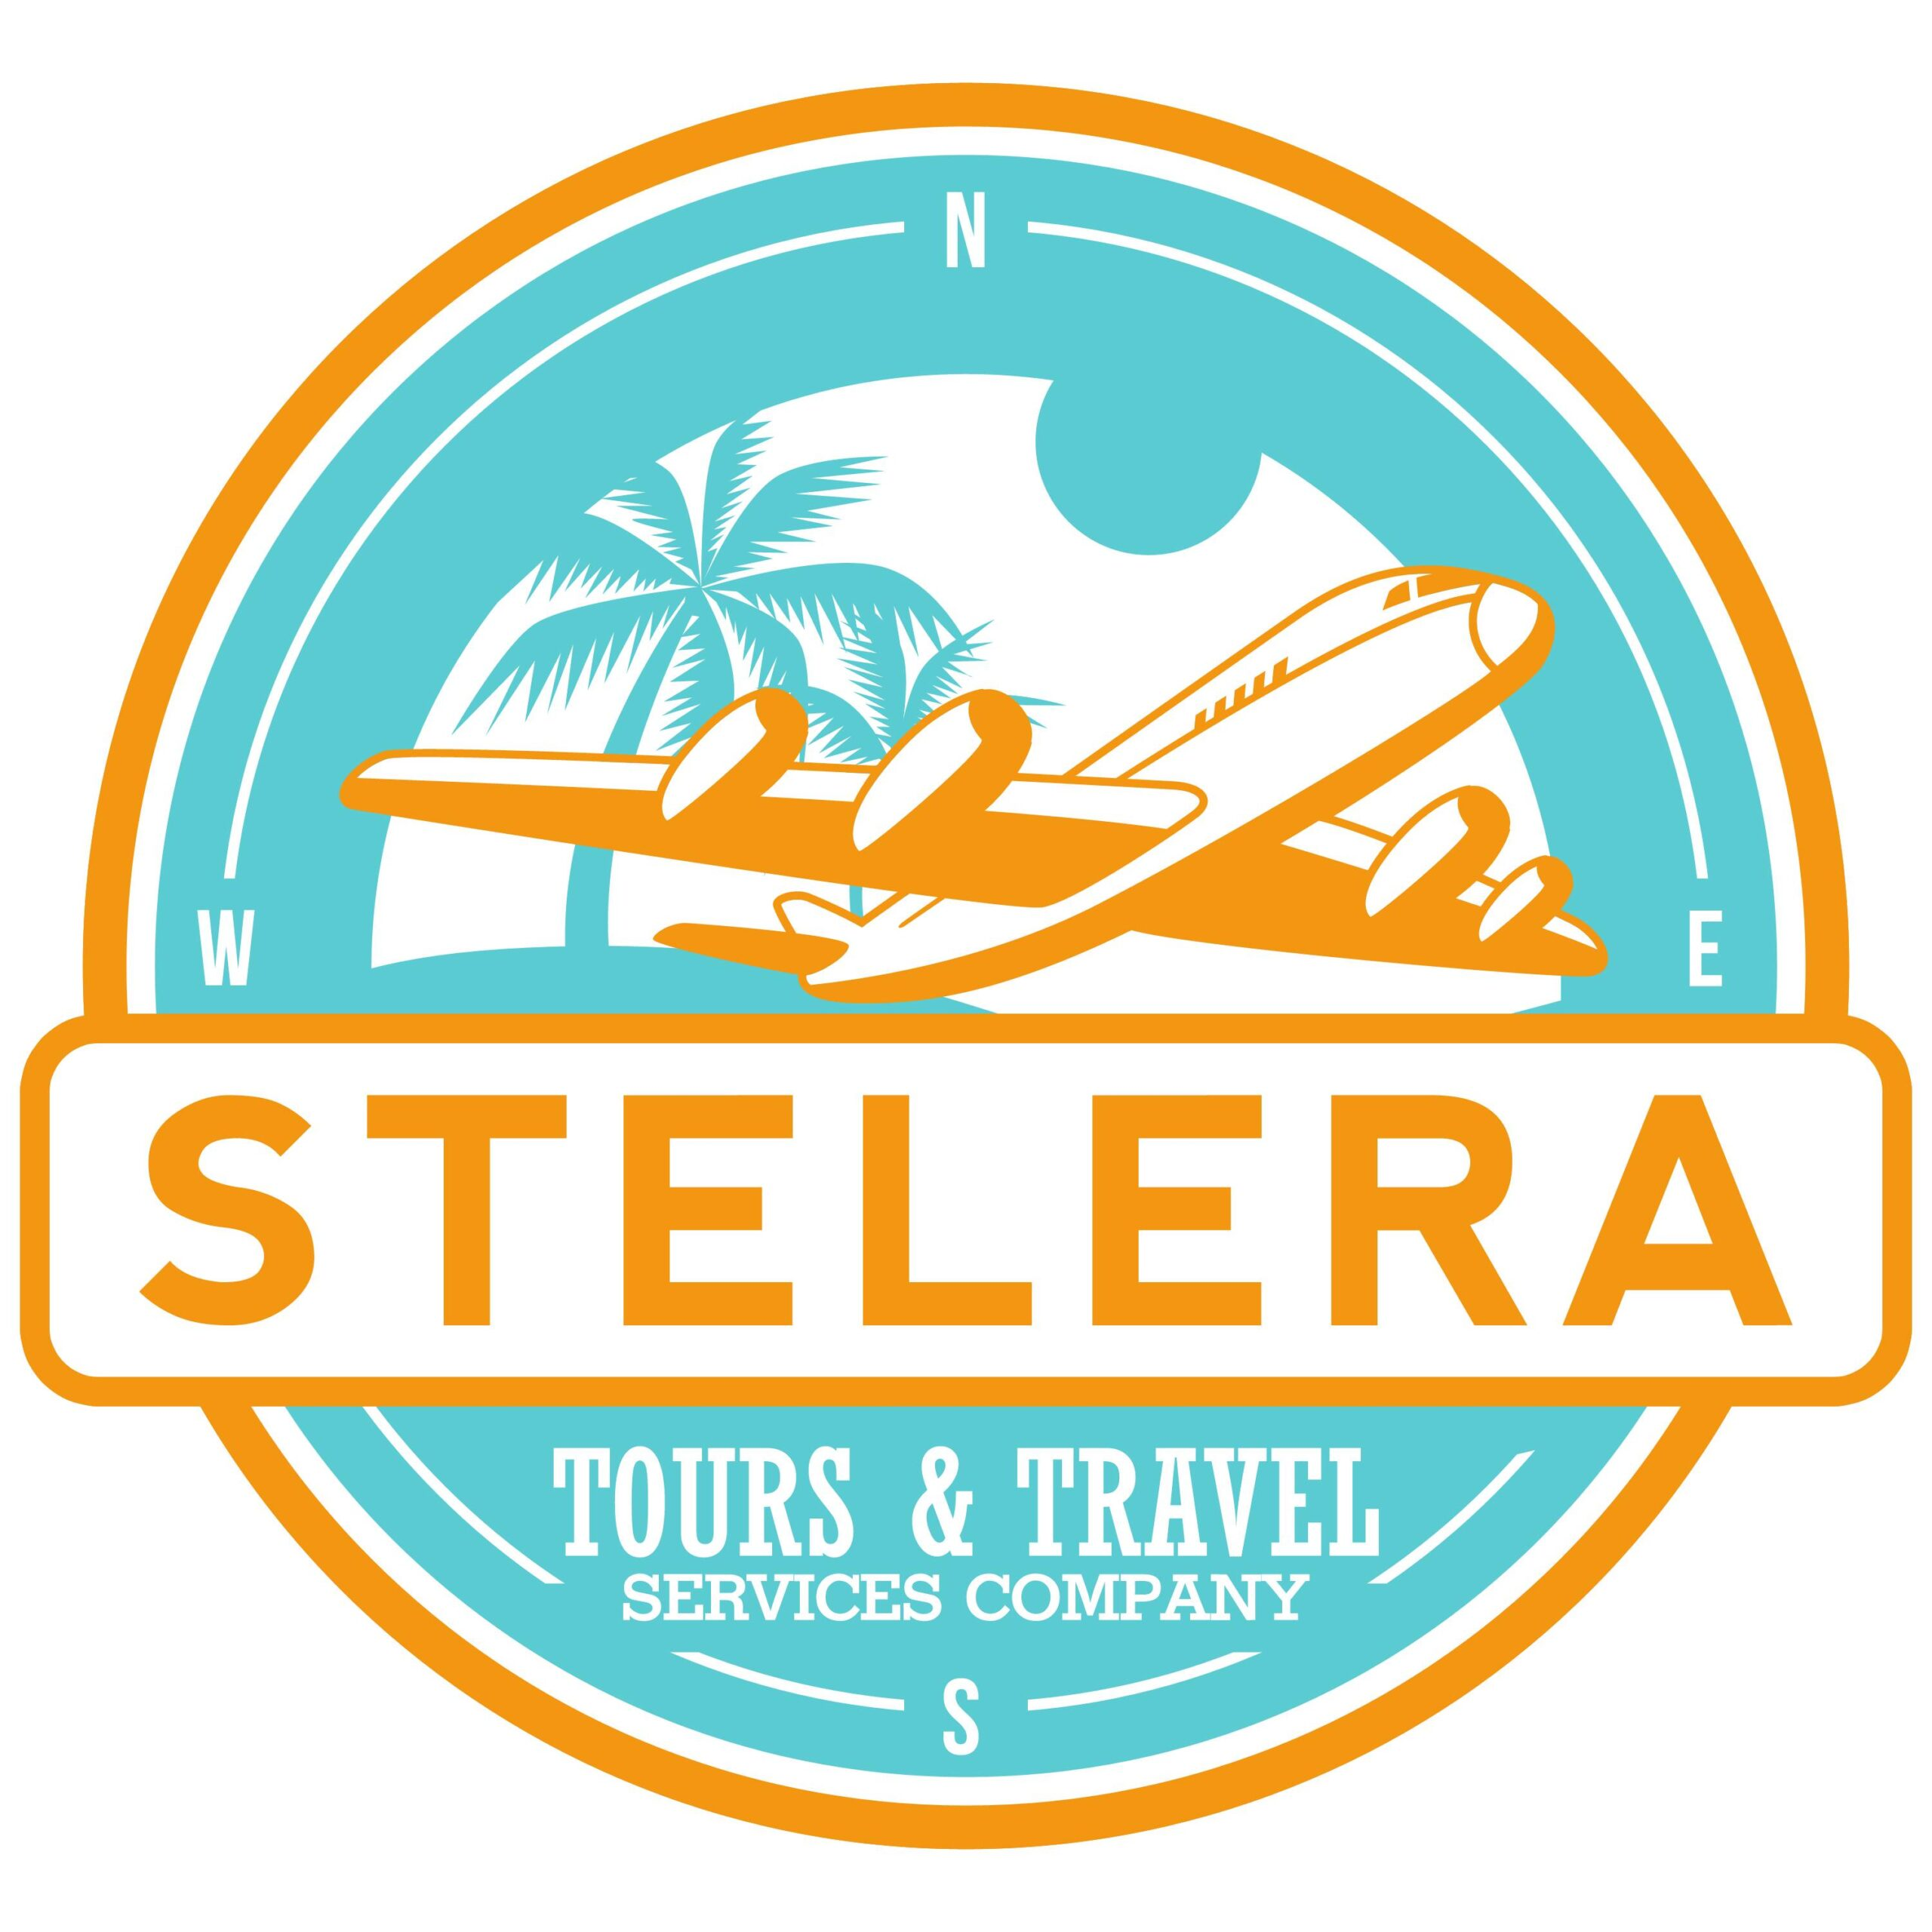 Jackie Lou Relleve, Stelera Tours and Travel Services Company, Philippines